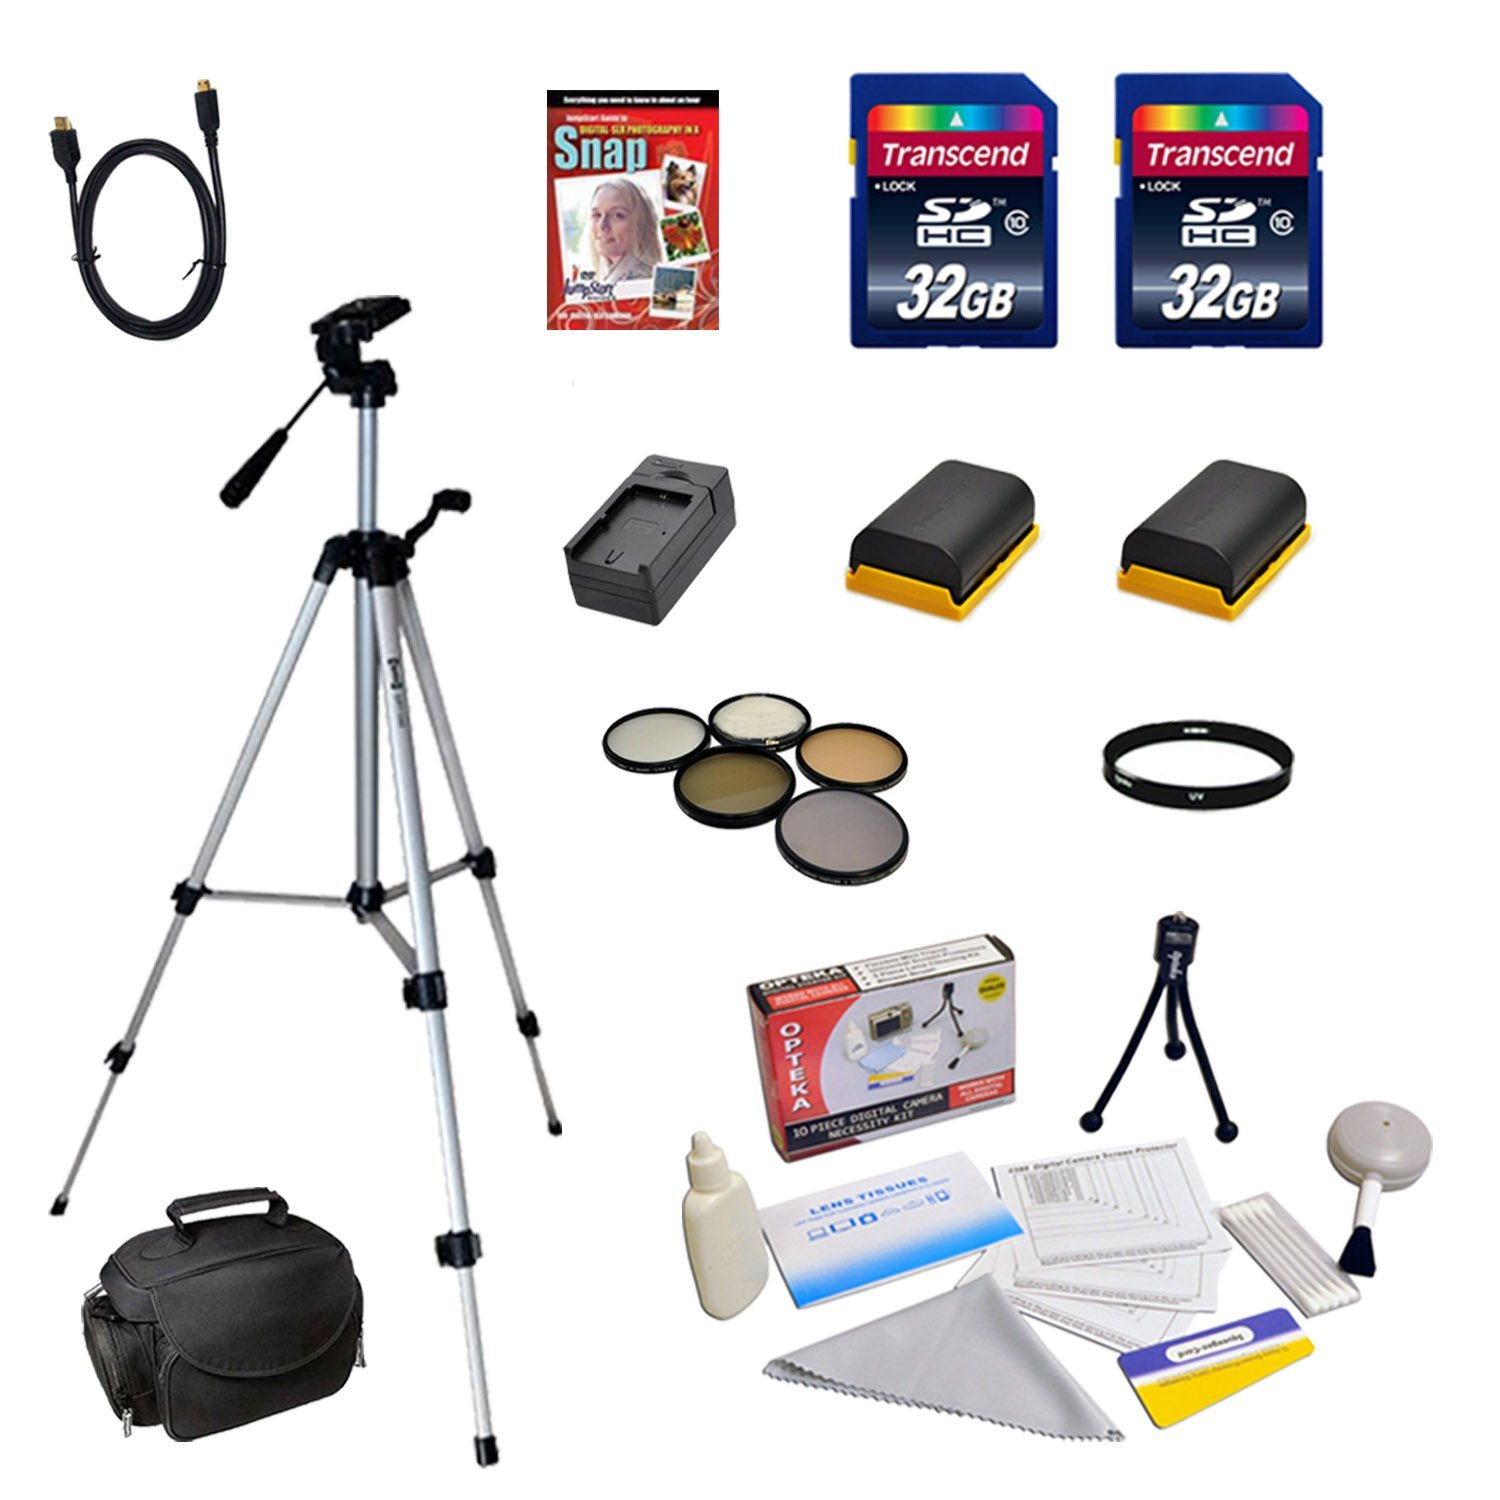 Accessory Bundle Kit For The Canon EOS 60D, EOS 70D, EOS 5D Mark II, 5D Mark III 7D DSLR Cameras - Black Friday / Cyber Monday Deal.